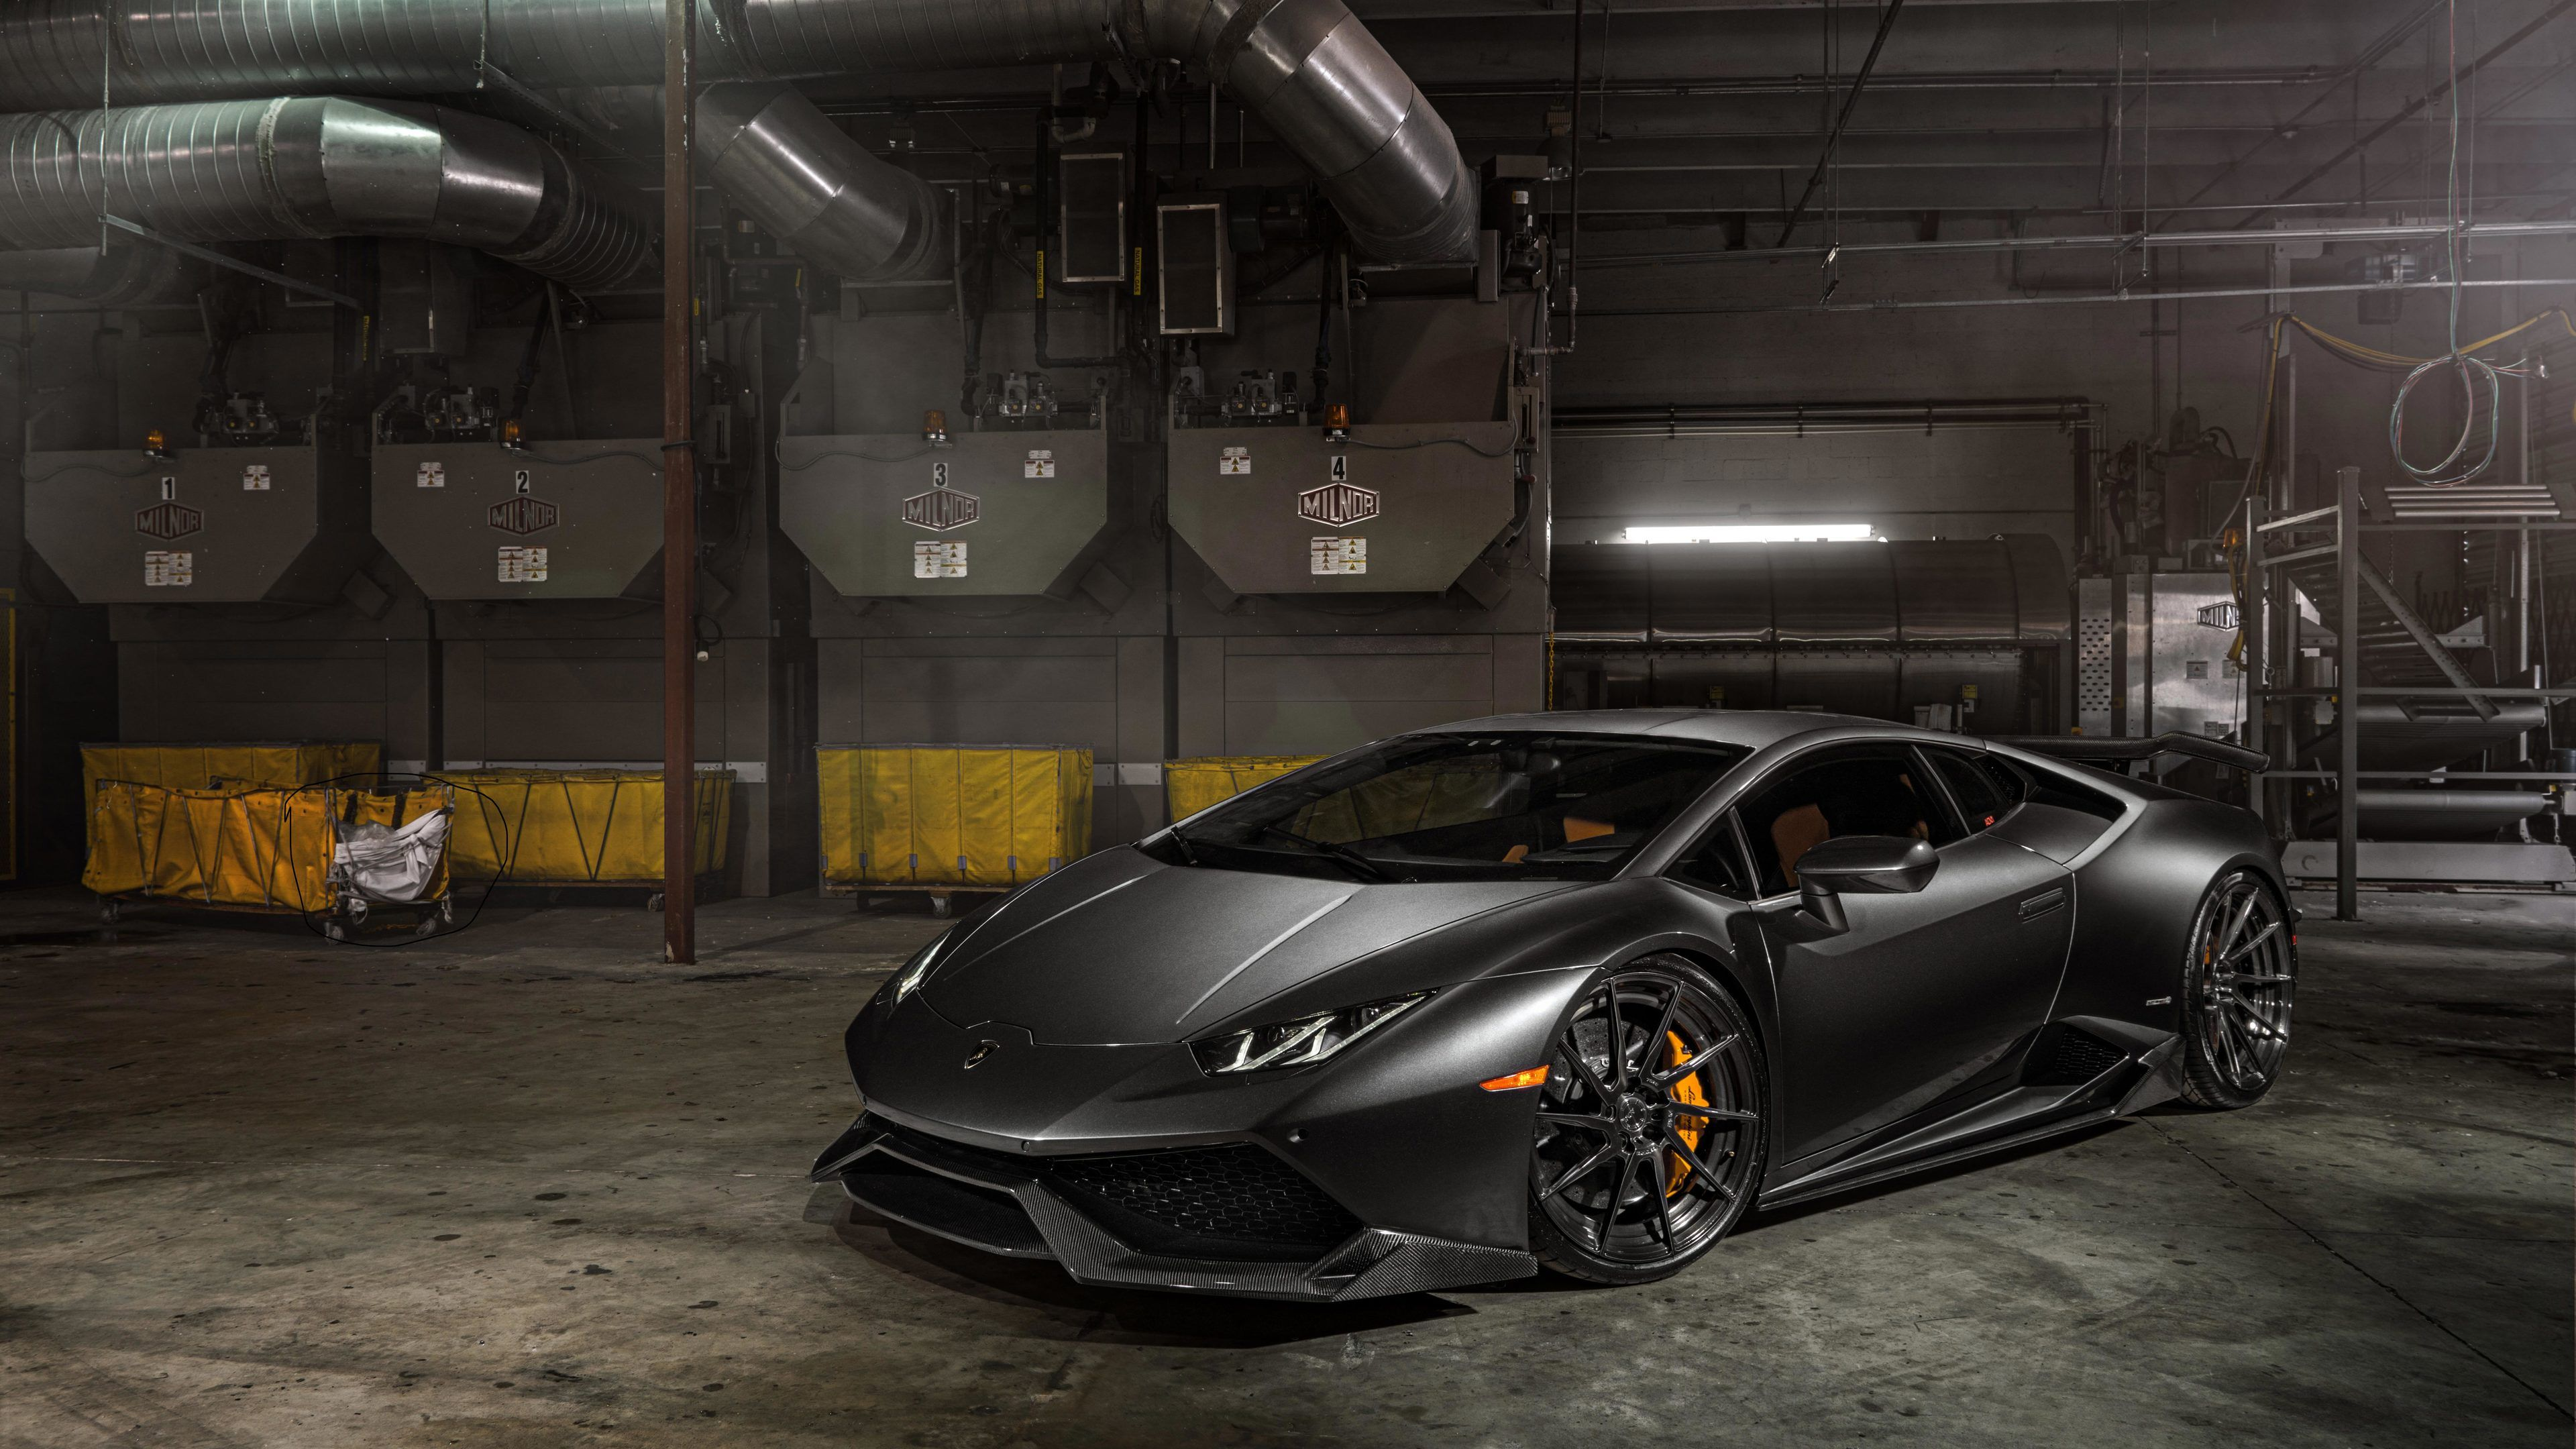 Lamborghini Huracan 8k Lamborghini Wallpapers Lamborghini Huracan Wallpapers Hd Wallpapers Cars Wallpapers 8 Car Wallpapers Lamborghini Lamborghini Huracan